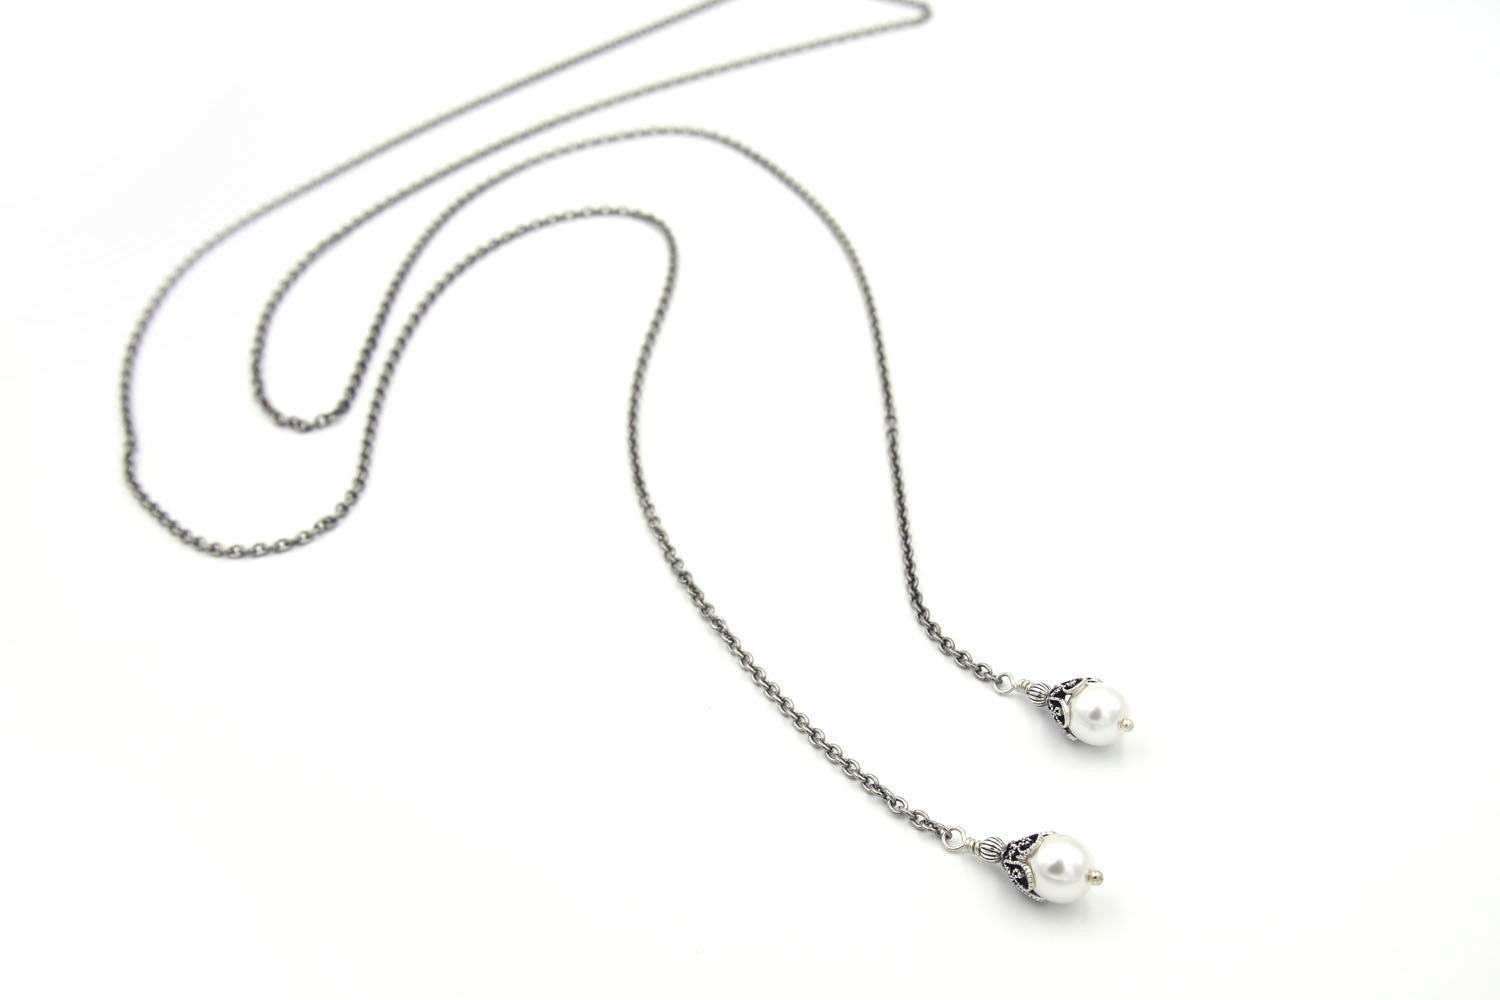 Long Silver Lariat Necklace with Pearls